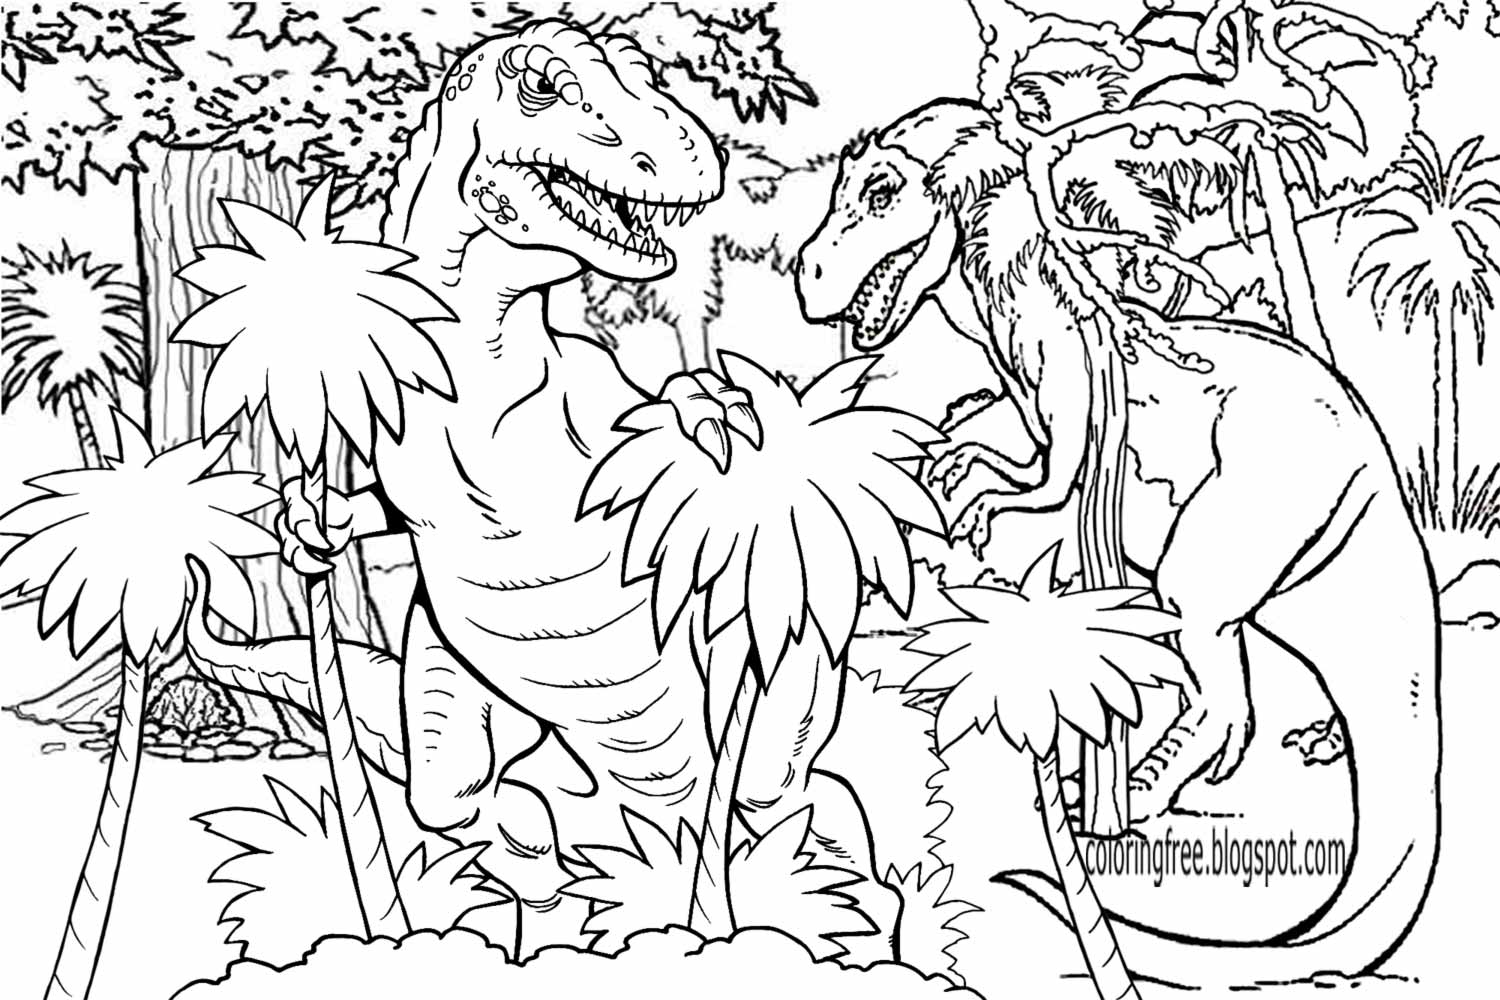 dinosaur coloring pages printable free colormecrazyorg dinosaur train coloring pages coloring pages printable free dinosaur